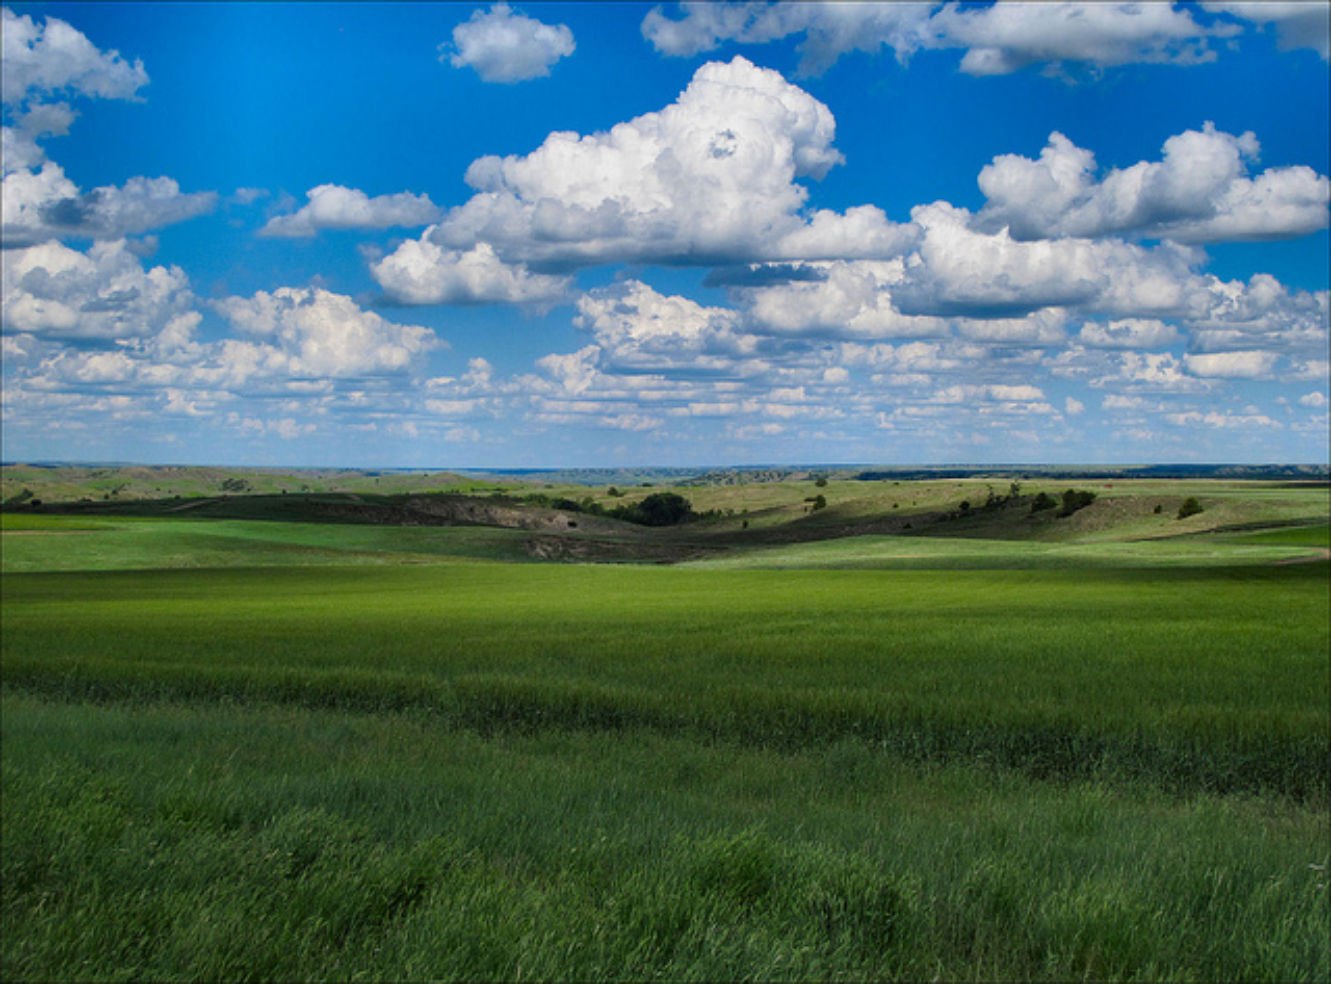 The plains of South Dakota